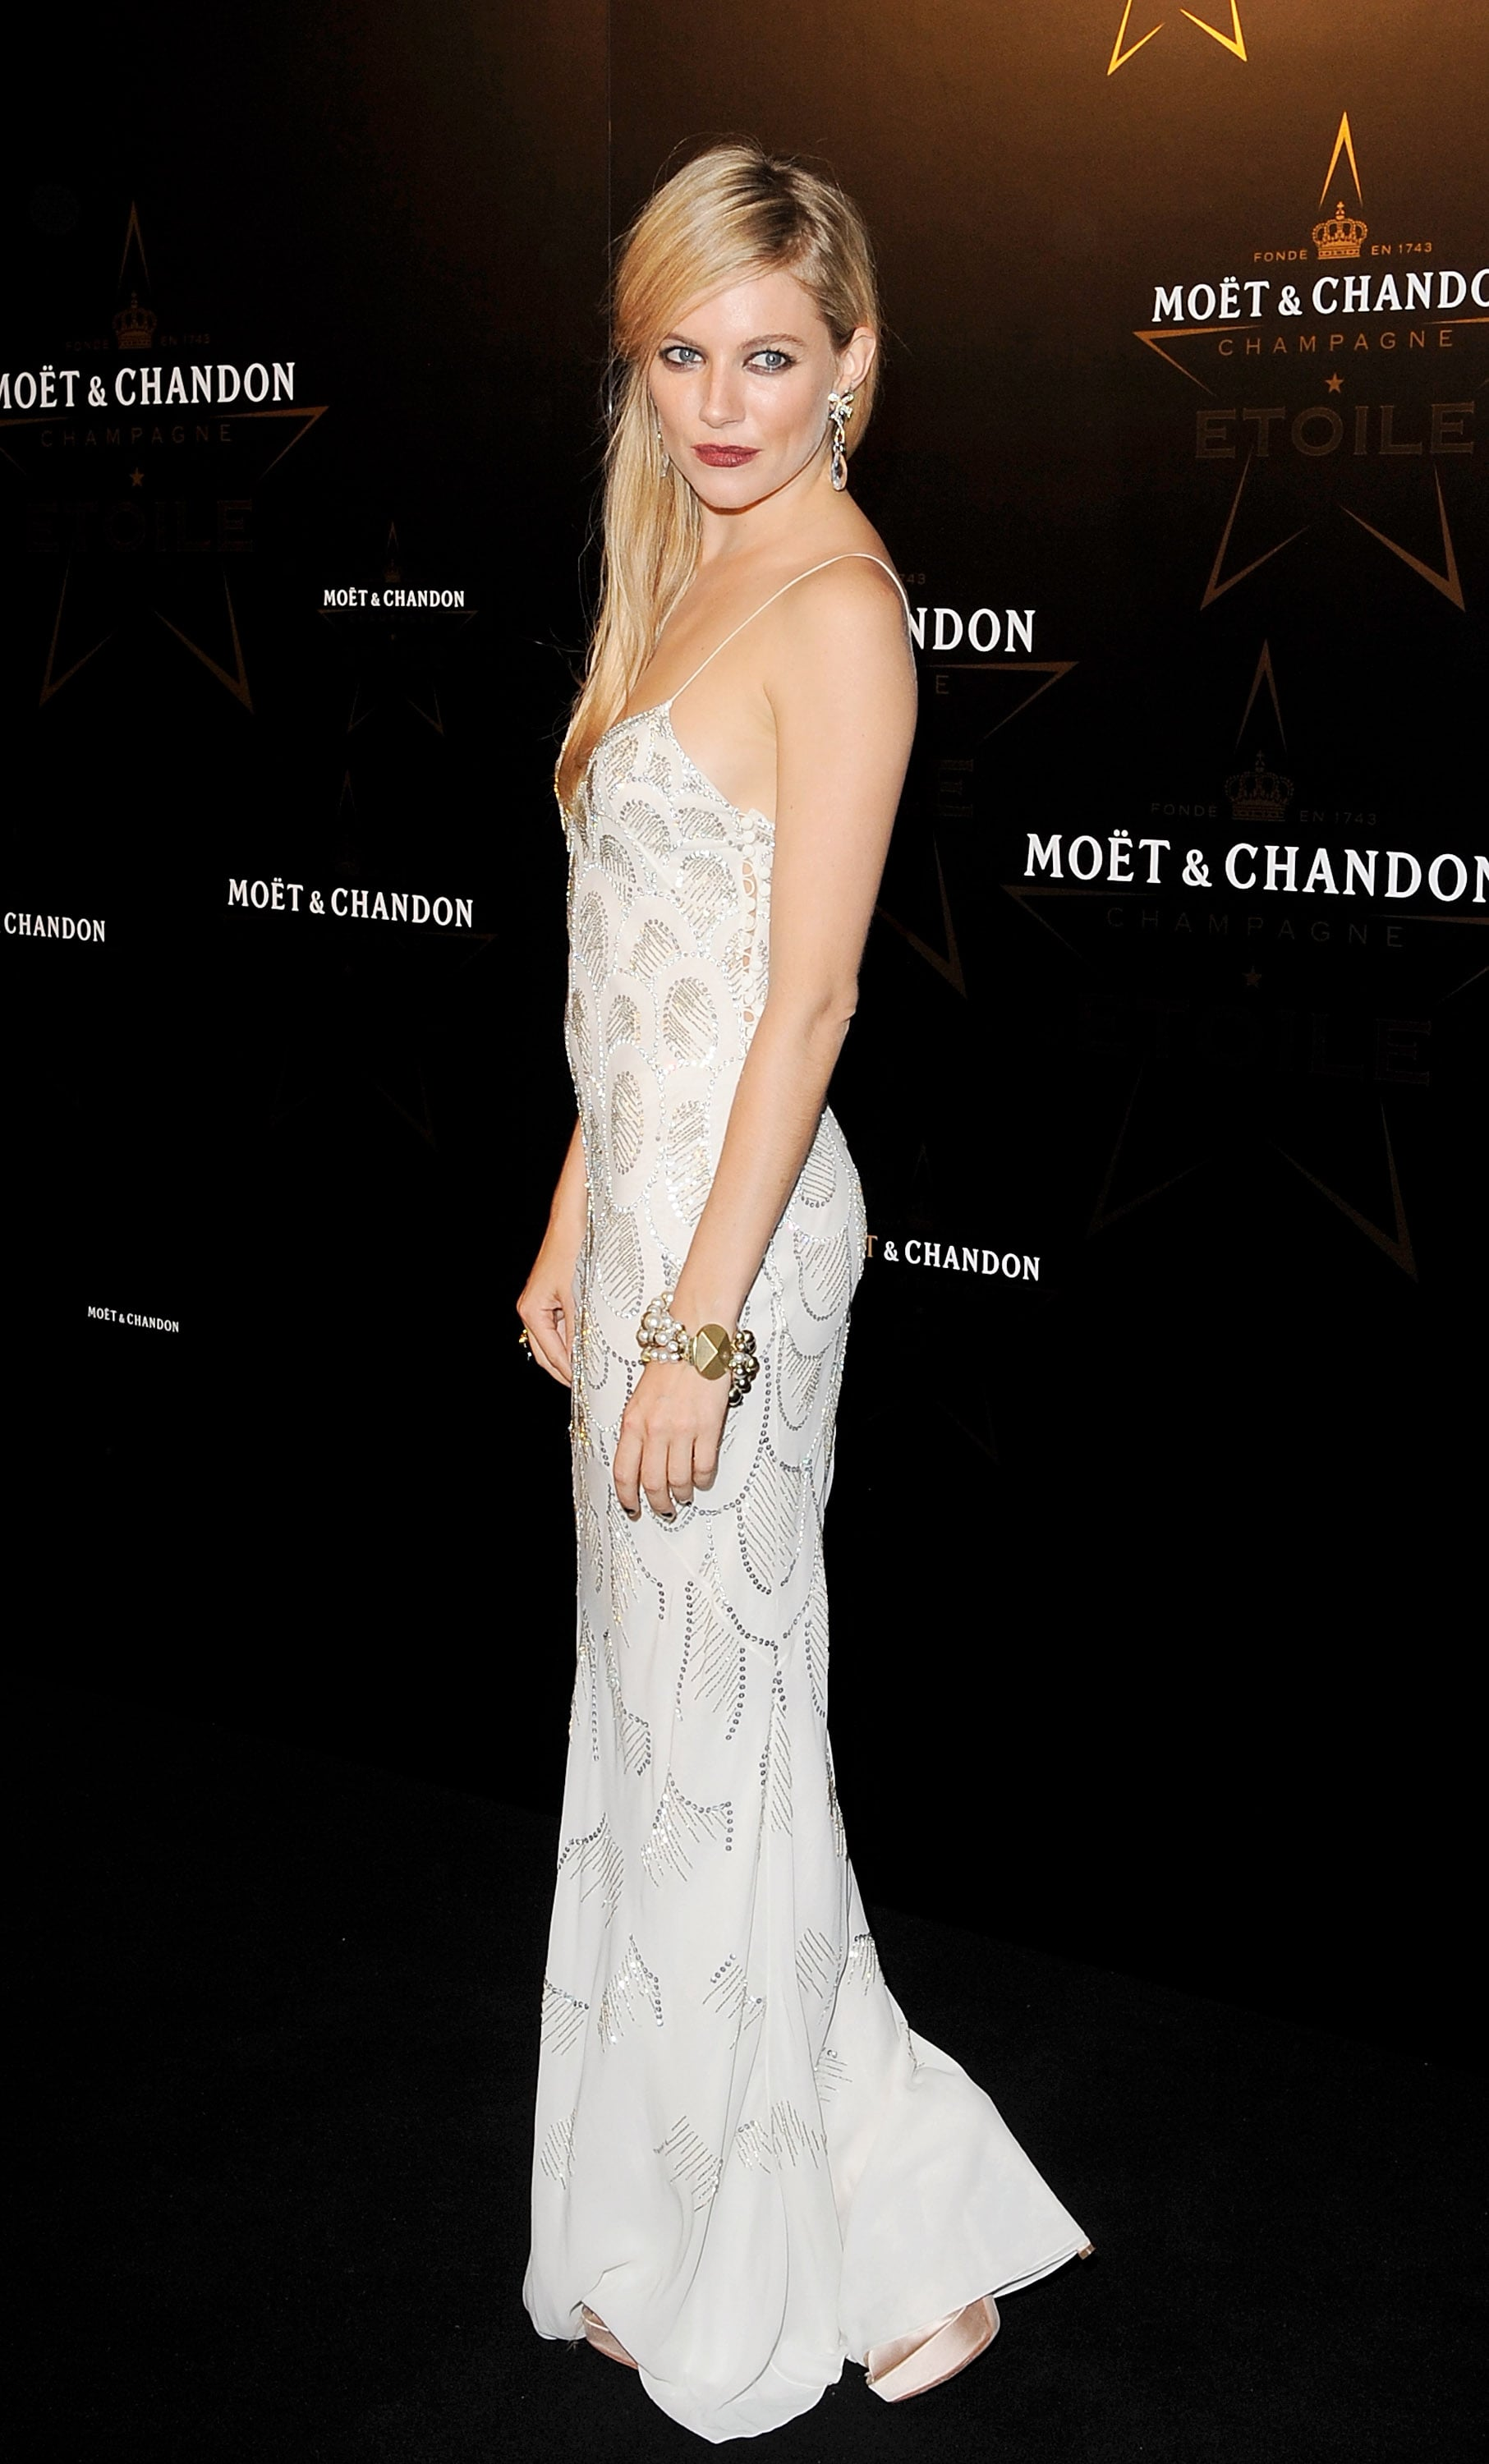 Sienna sparkled in a white Christian Dior gown at an event in 2011.